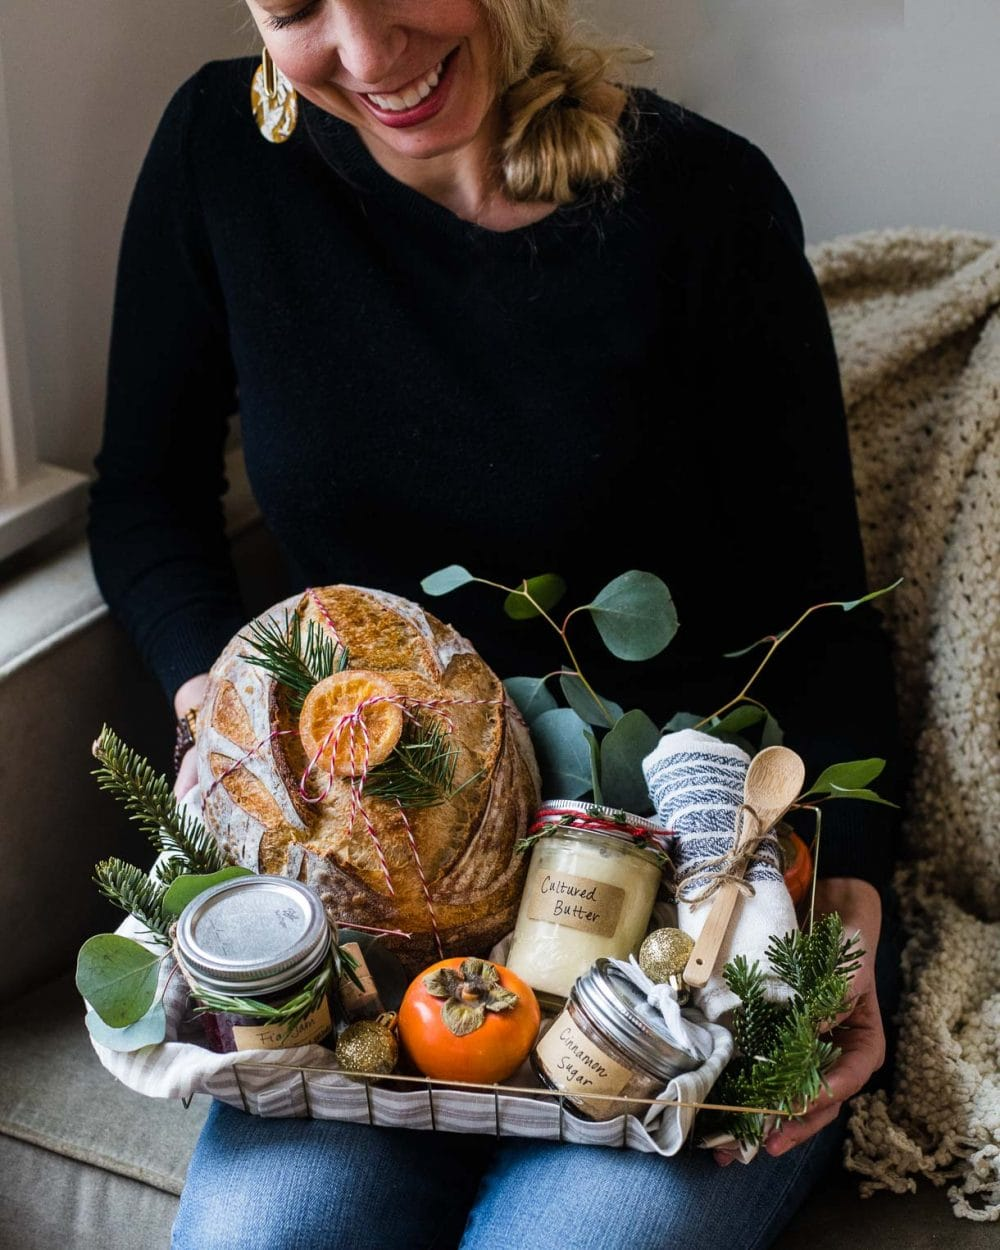 woman holding a gift basket with bread, jam, and butter